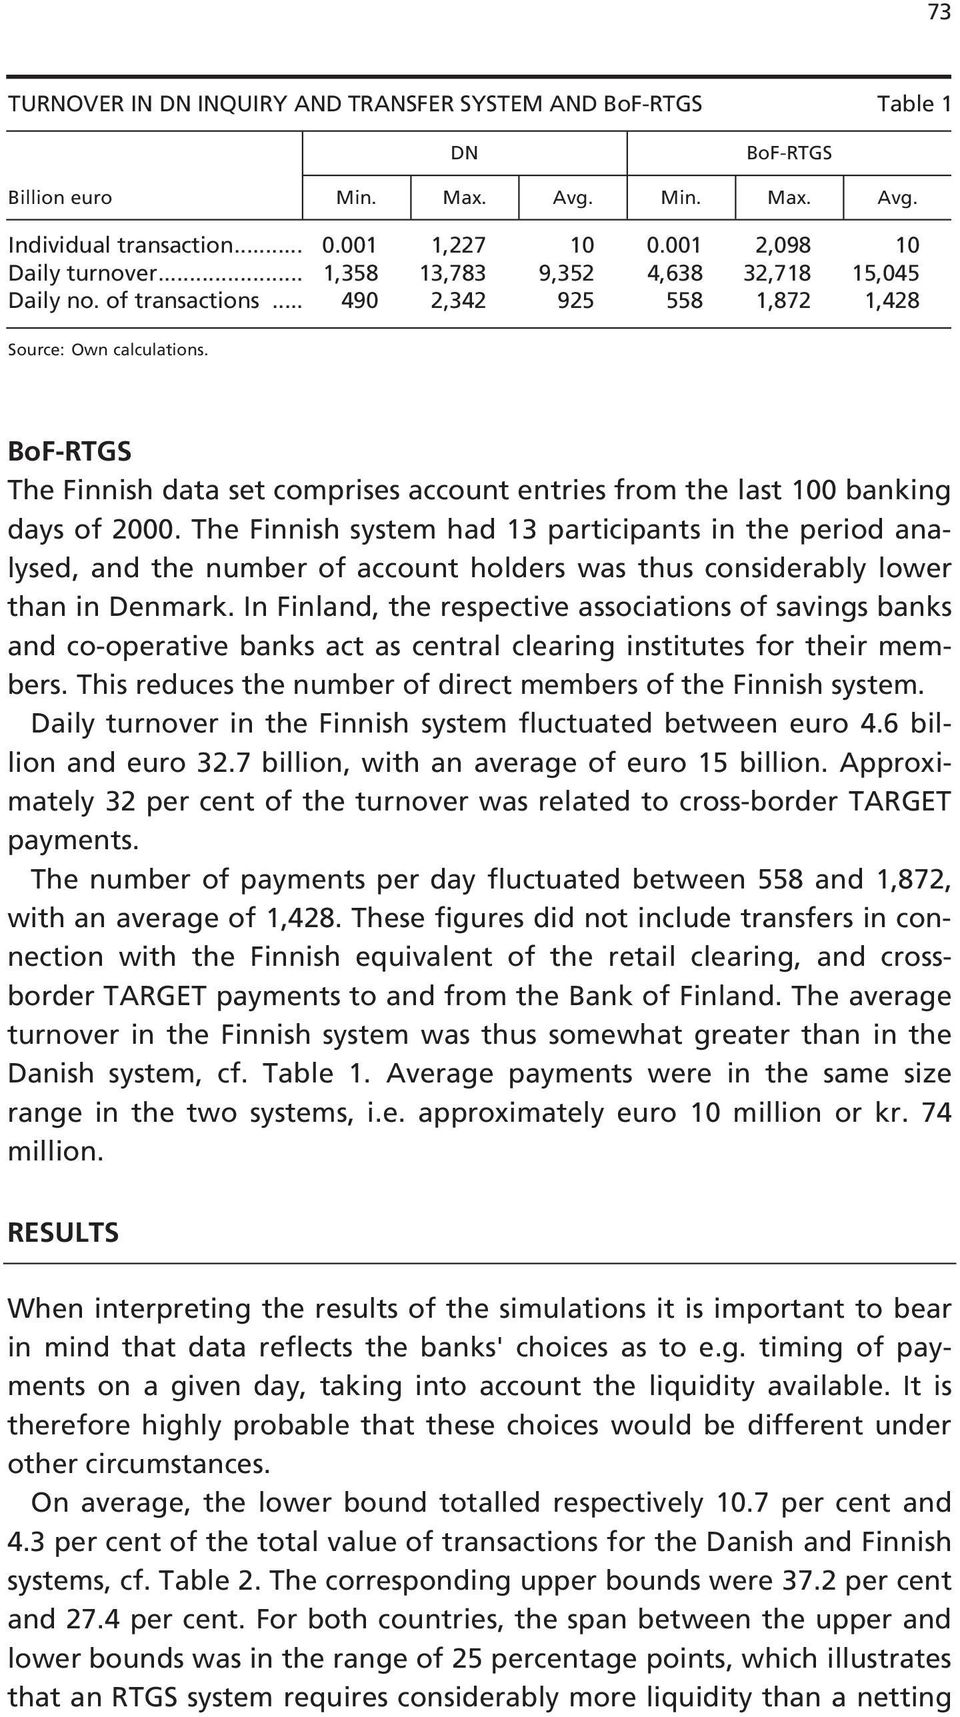 BoF-RTGS The Finnish data set comprises account entries from the last 0 banking days of 2000.